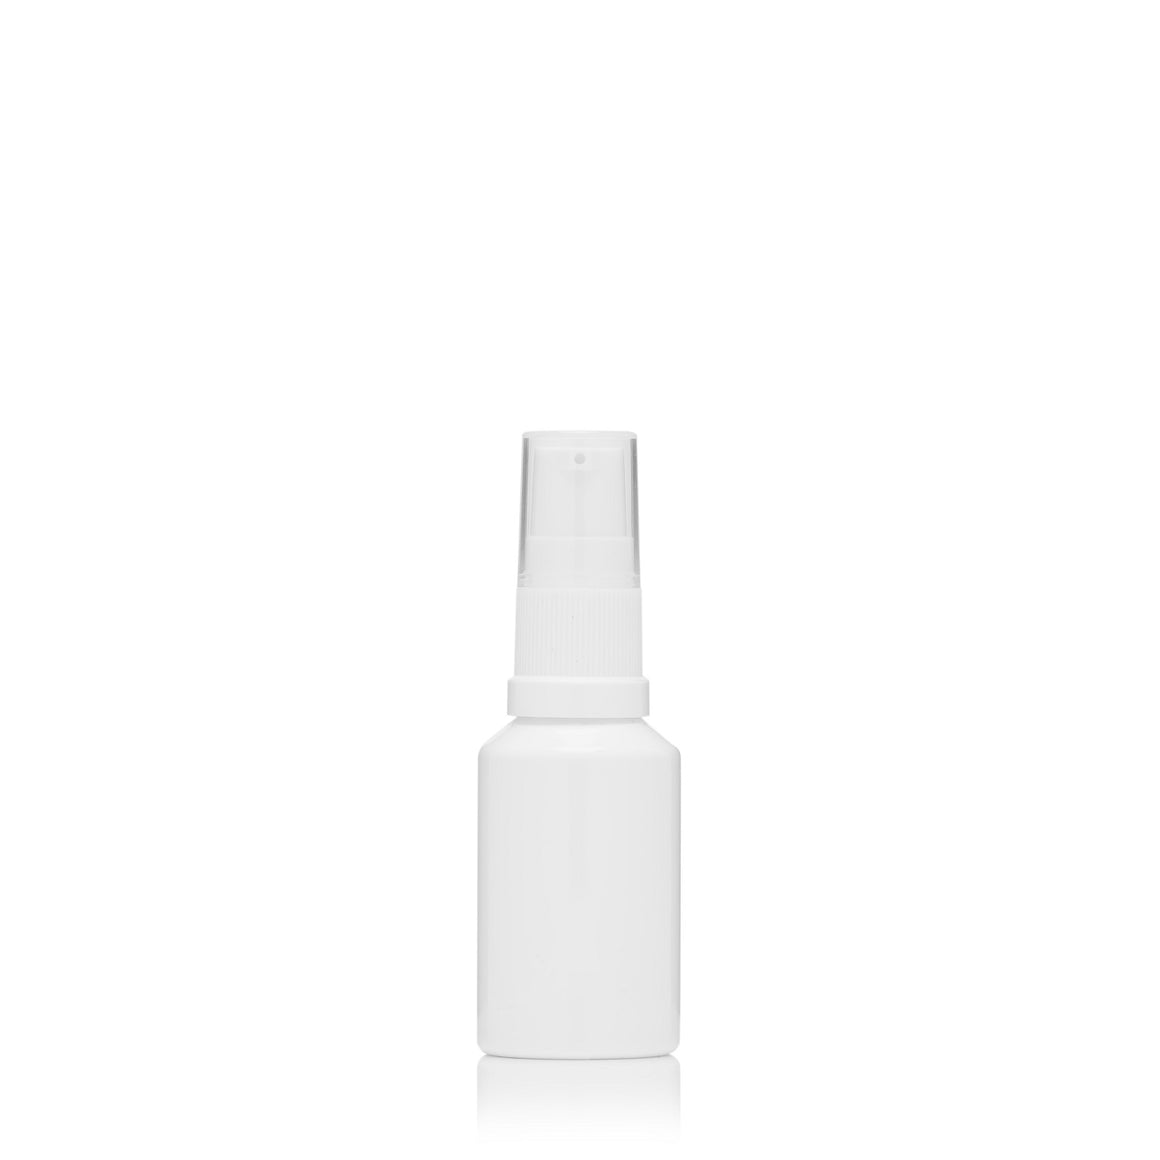 Active Anti-Ageing Elixir - 30ml Pure